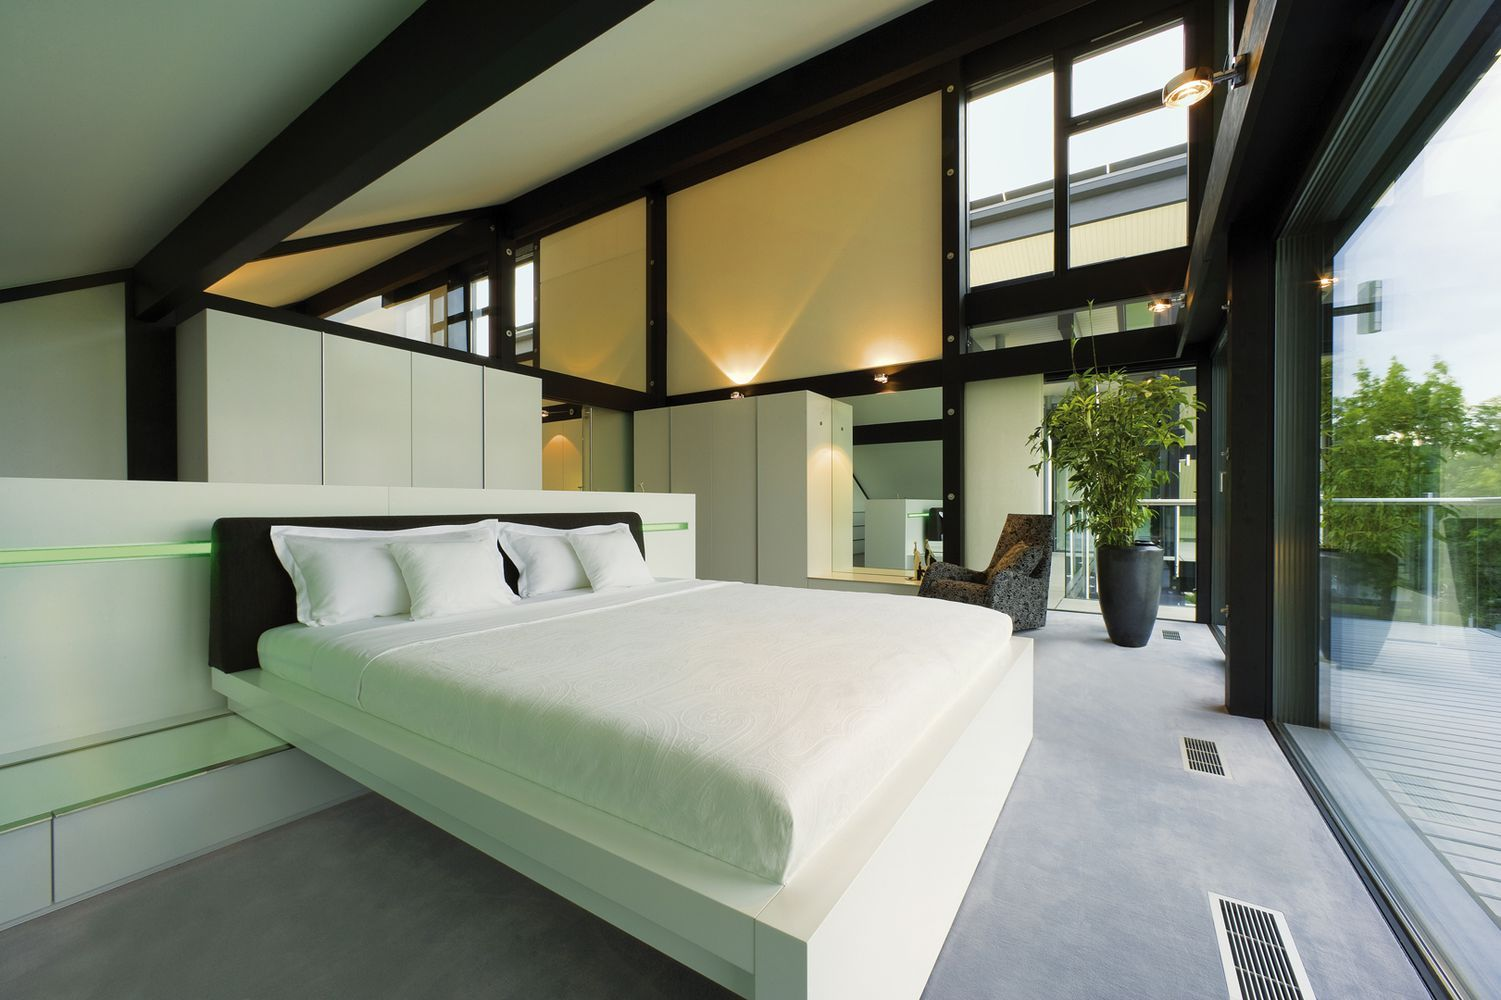 Excellent Photo Gallery Of Prefabricated Houses Huf Haus Huf Haus Largest Home Design Picture Inspirations Pitcheantrous